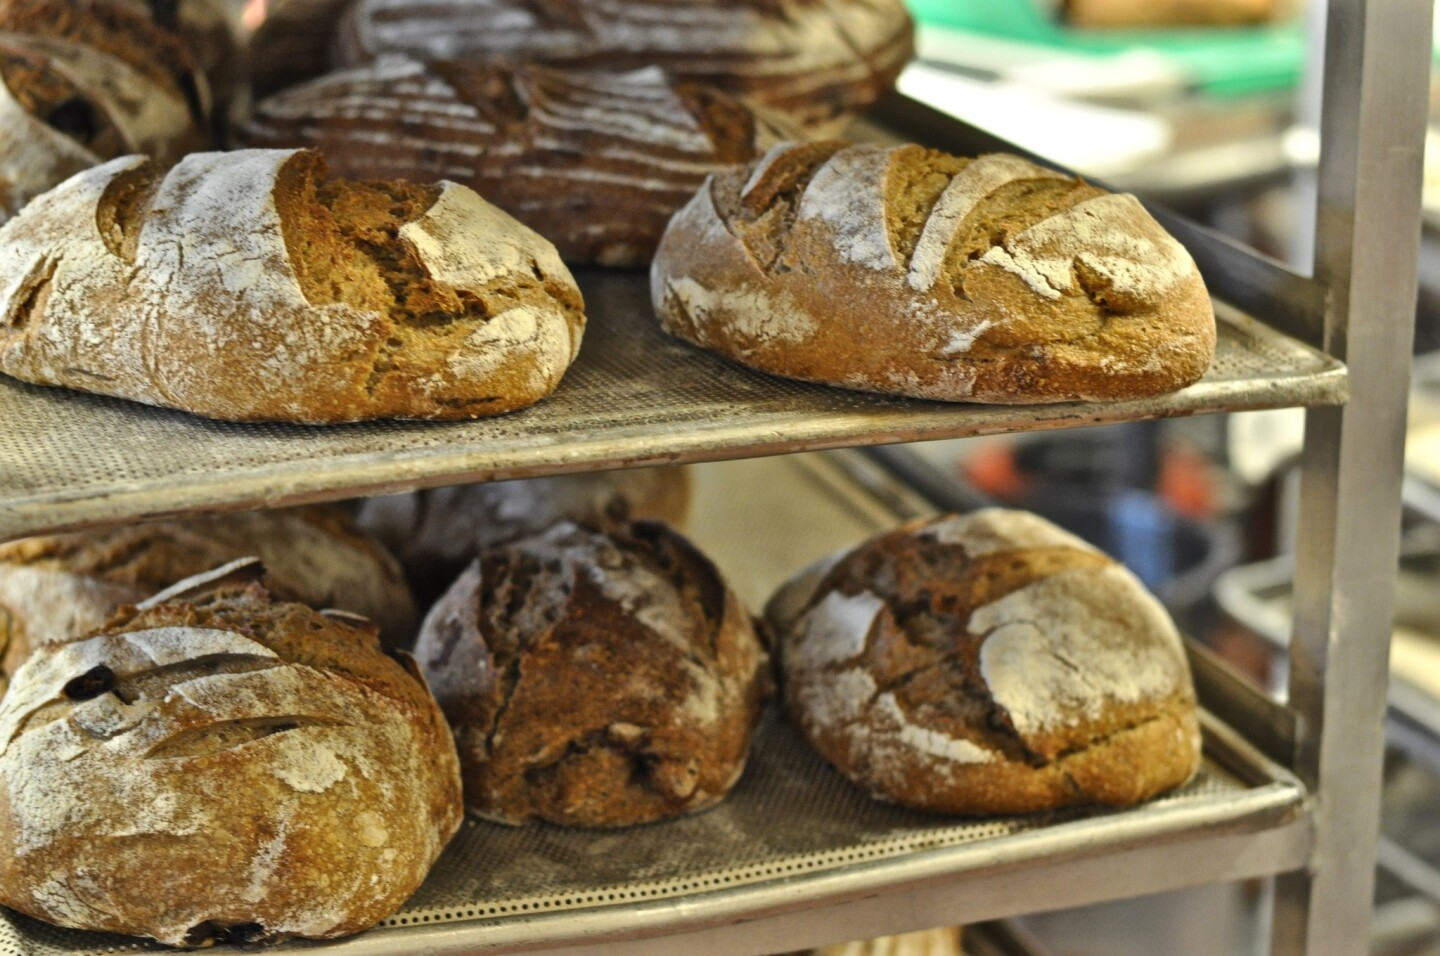 Loaves of whole grain bread rest in the kitchen near the deck oven at Seed Bakery in Pasadena.